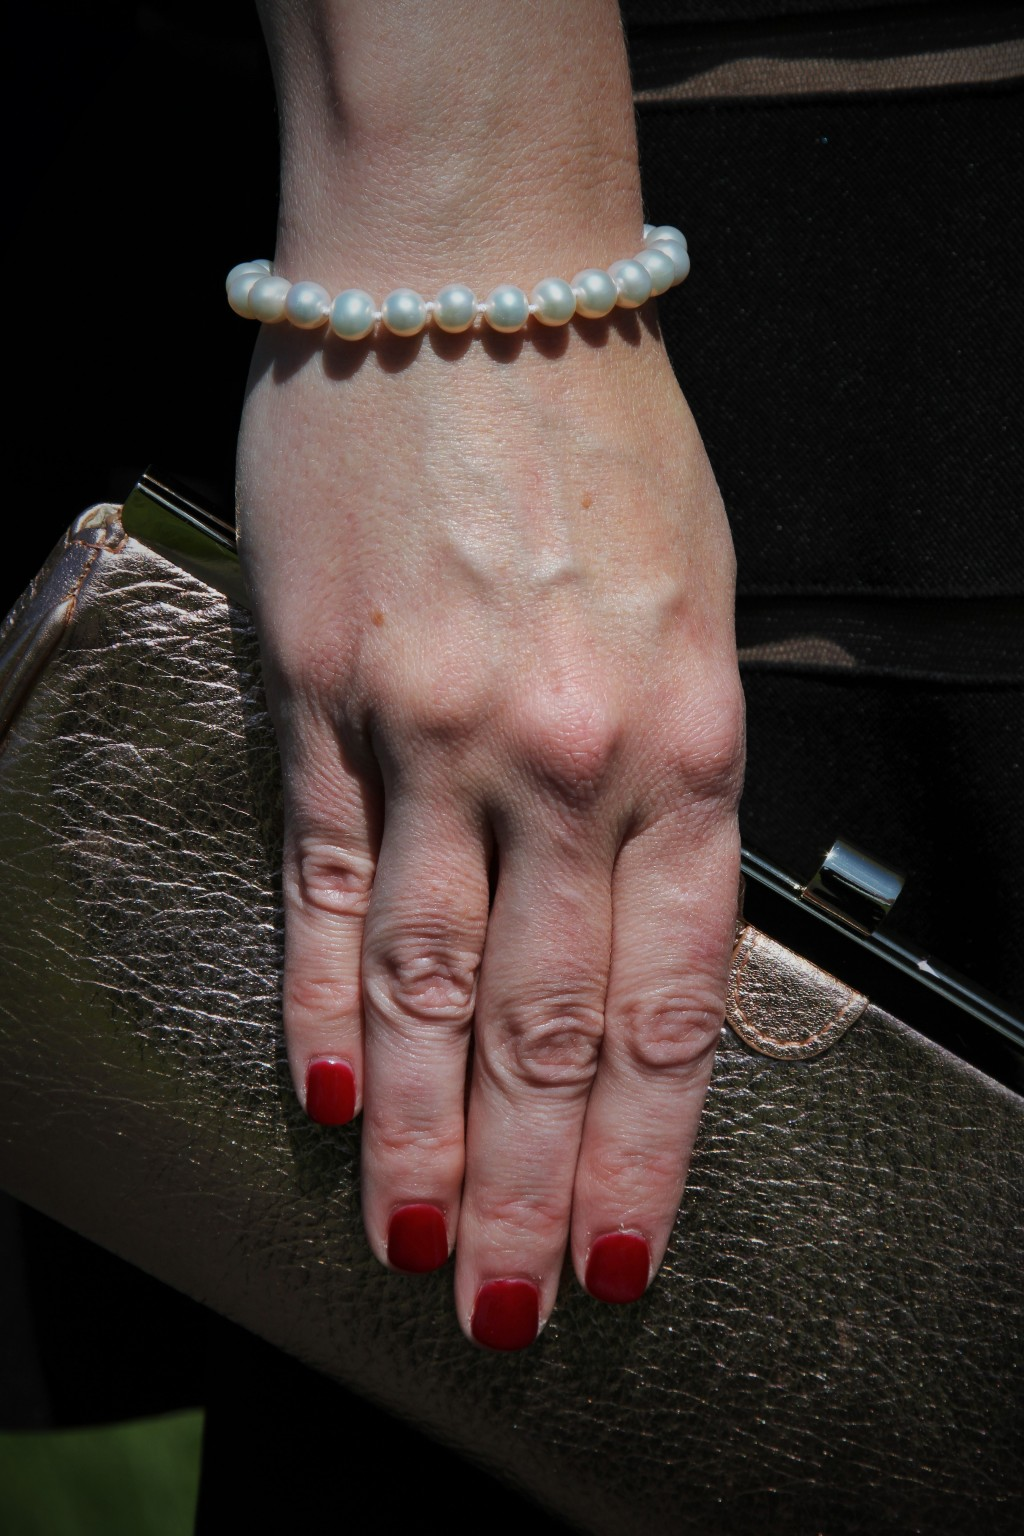 Red nails and pearls